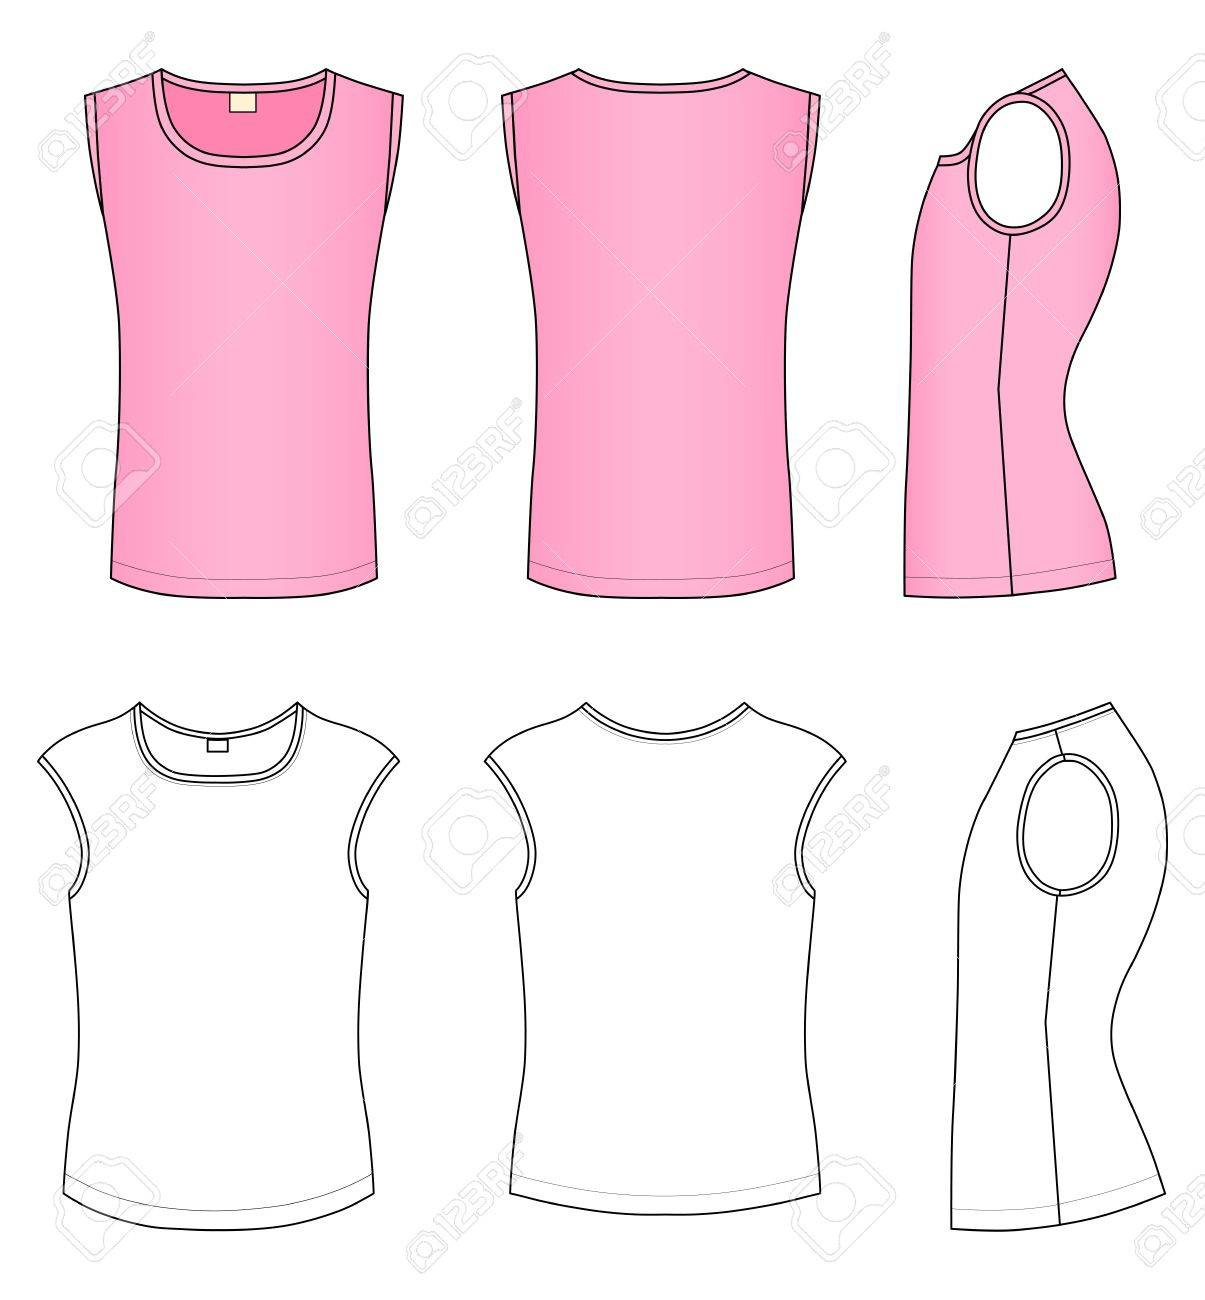 Outline pink t-shirt vector illustration isolated on white Stock Vector - 11357561